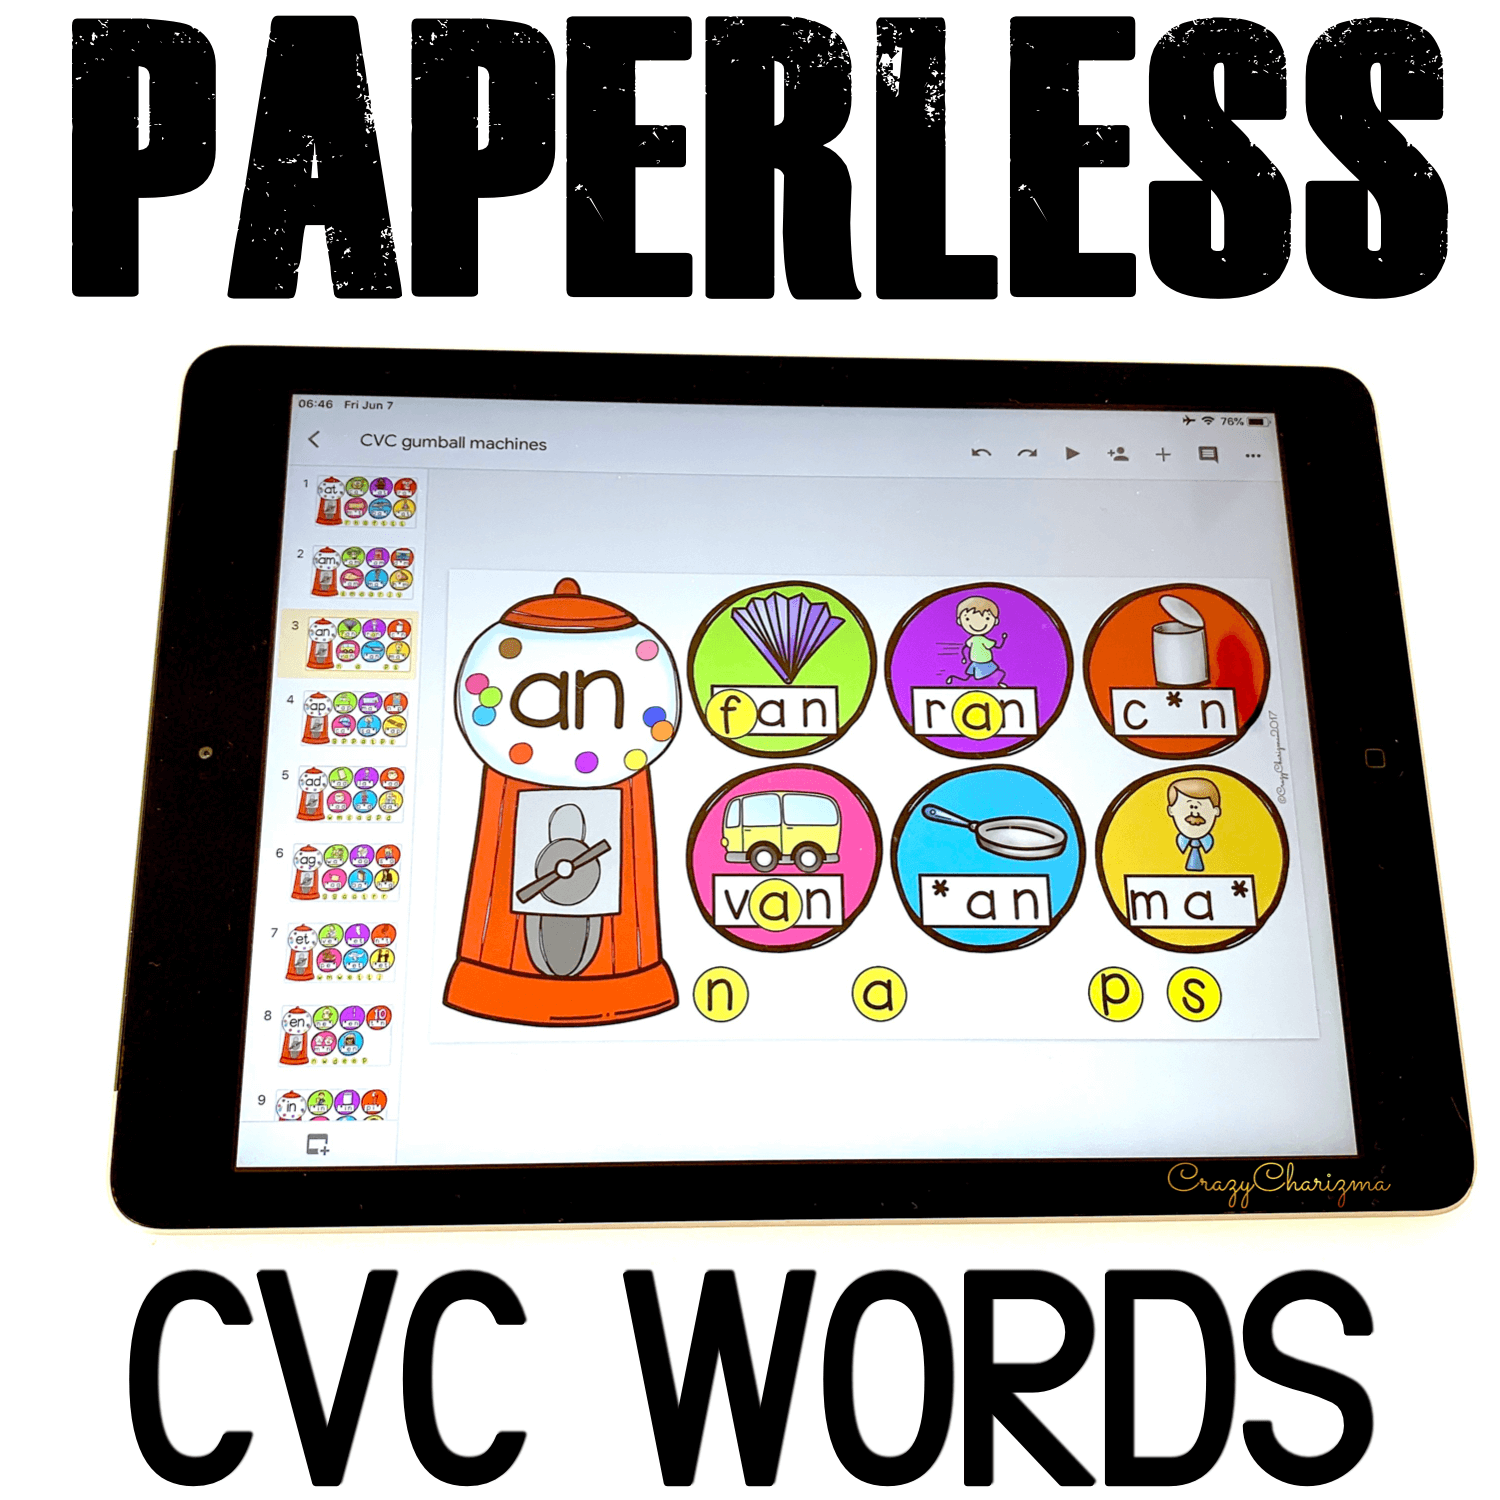 Google Classroom Activities for Kindergarten. CVC Words Games. Practice beginning, middle and ending sounds with CVC words activities. Check out digital word work games for your kids. Perfect for phonics centers, literacy centers, whole group, small group, and homework. #CrazyCharizma #GoogleClassroom #GoogleClassroomKindergarten #HandsOnActivitiesForKids #PaperlessClassroomElementary #SightWordActivities